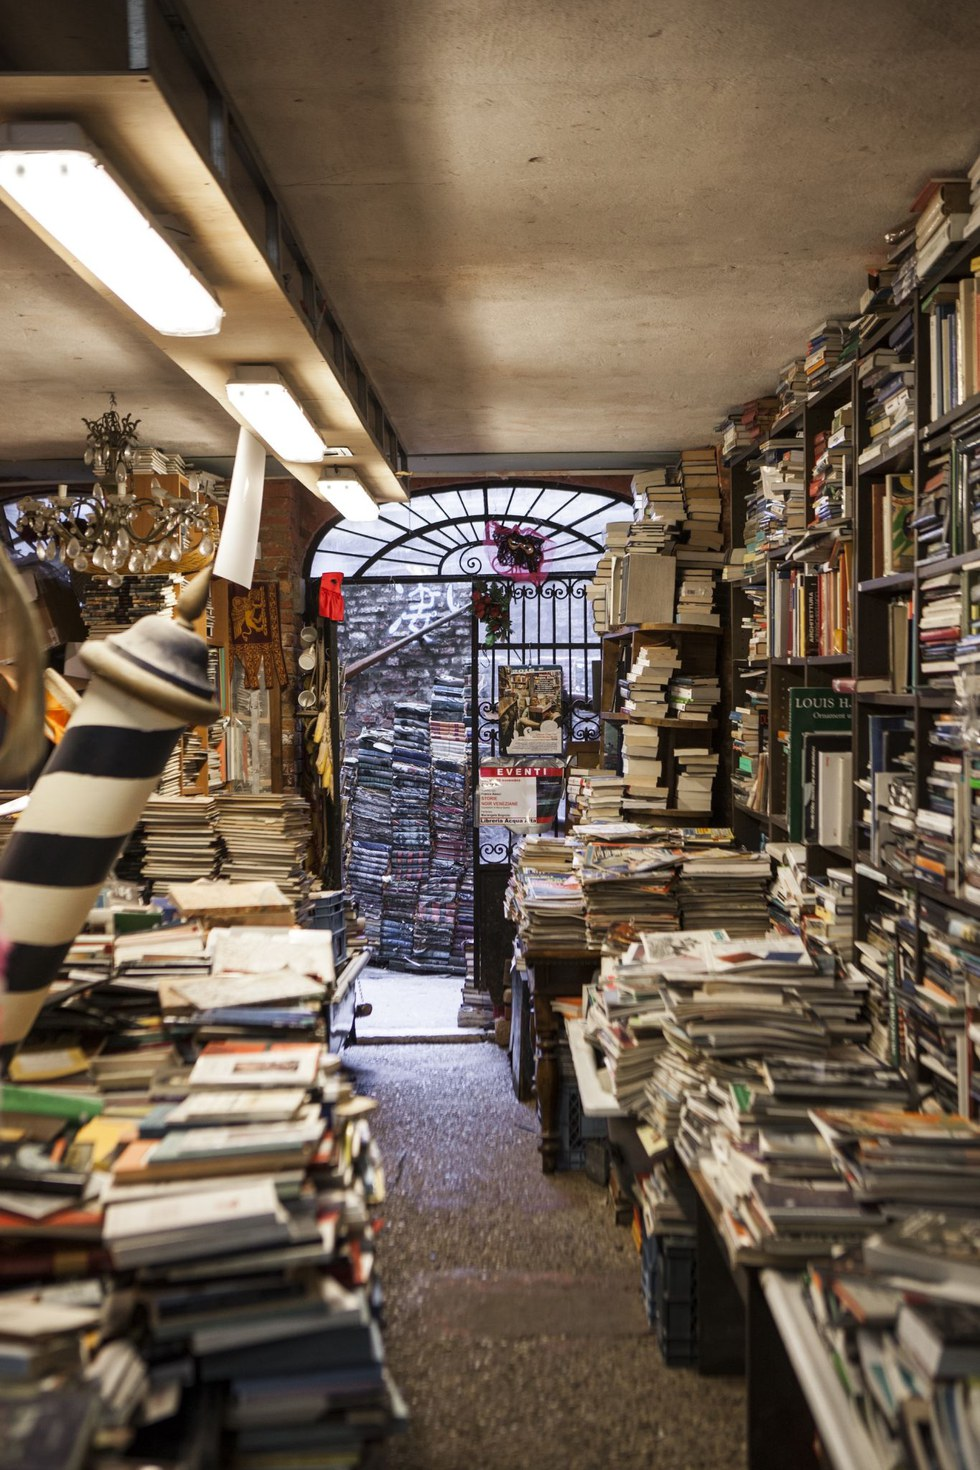 The inspired clutter at Libreria Acqua Alta